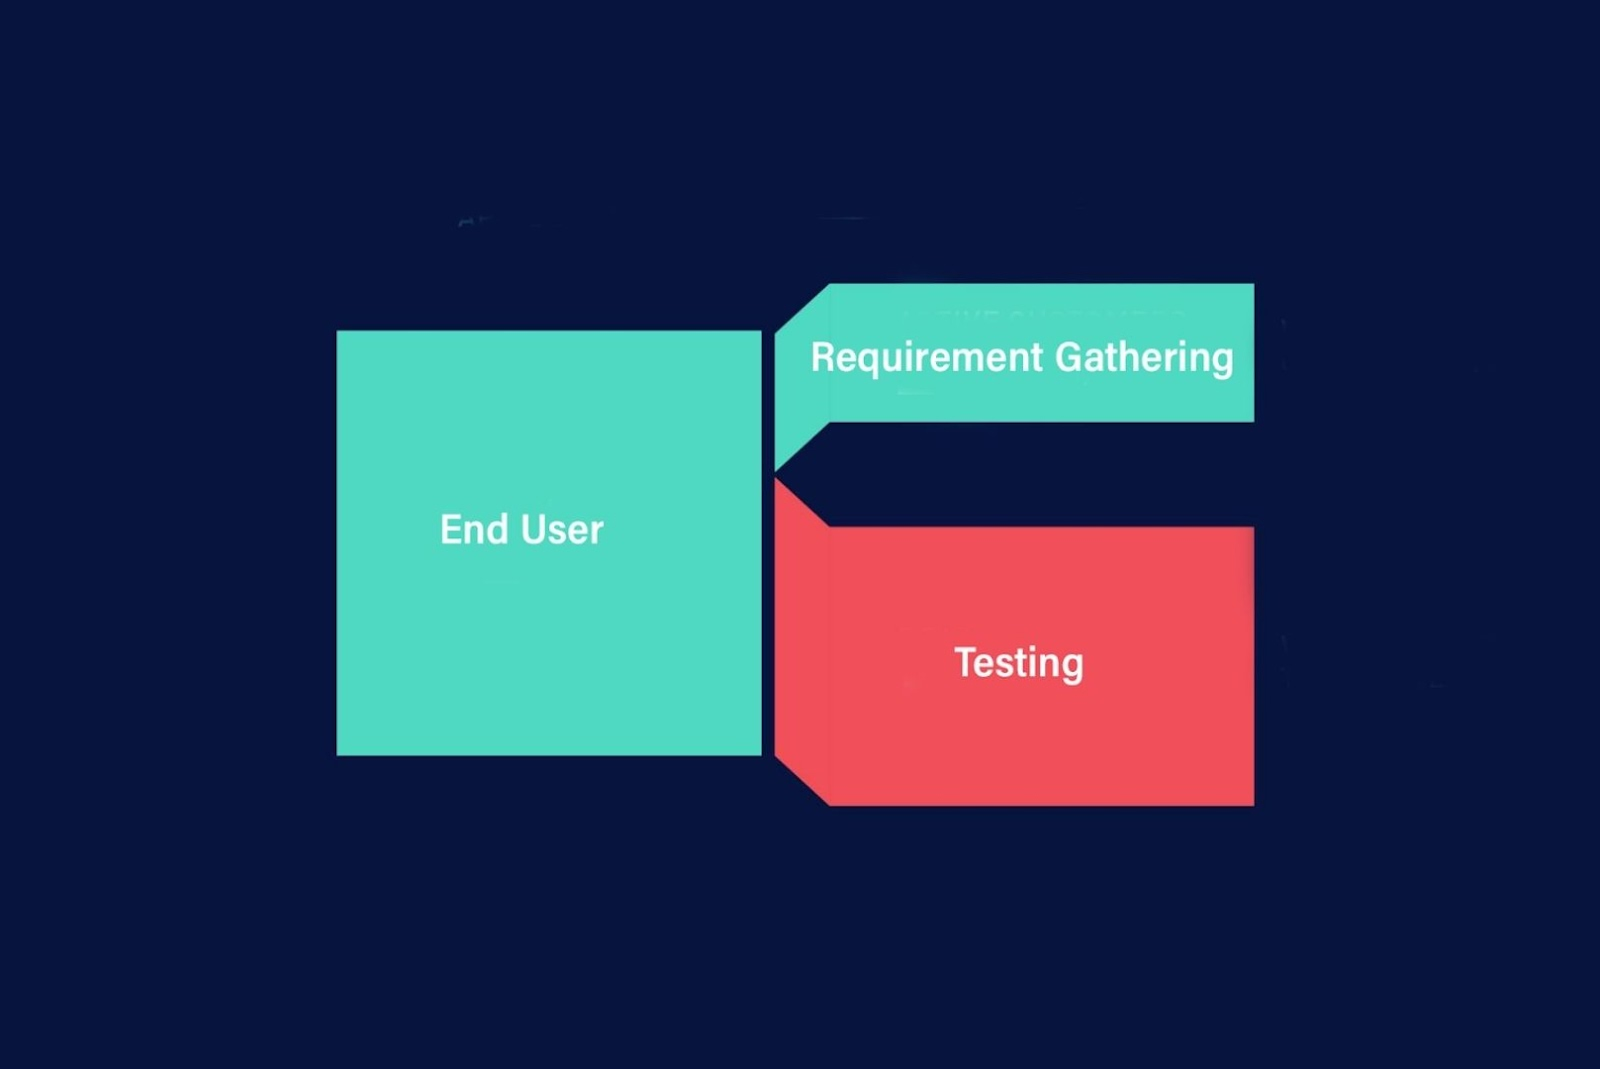 Risk management in software development relating to end-user engagement